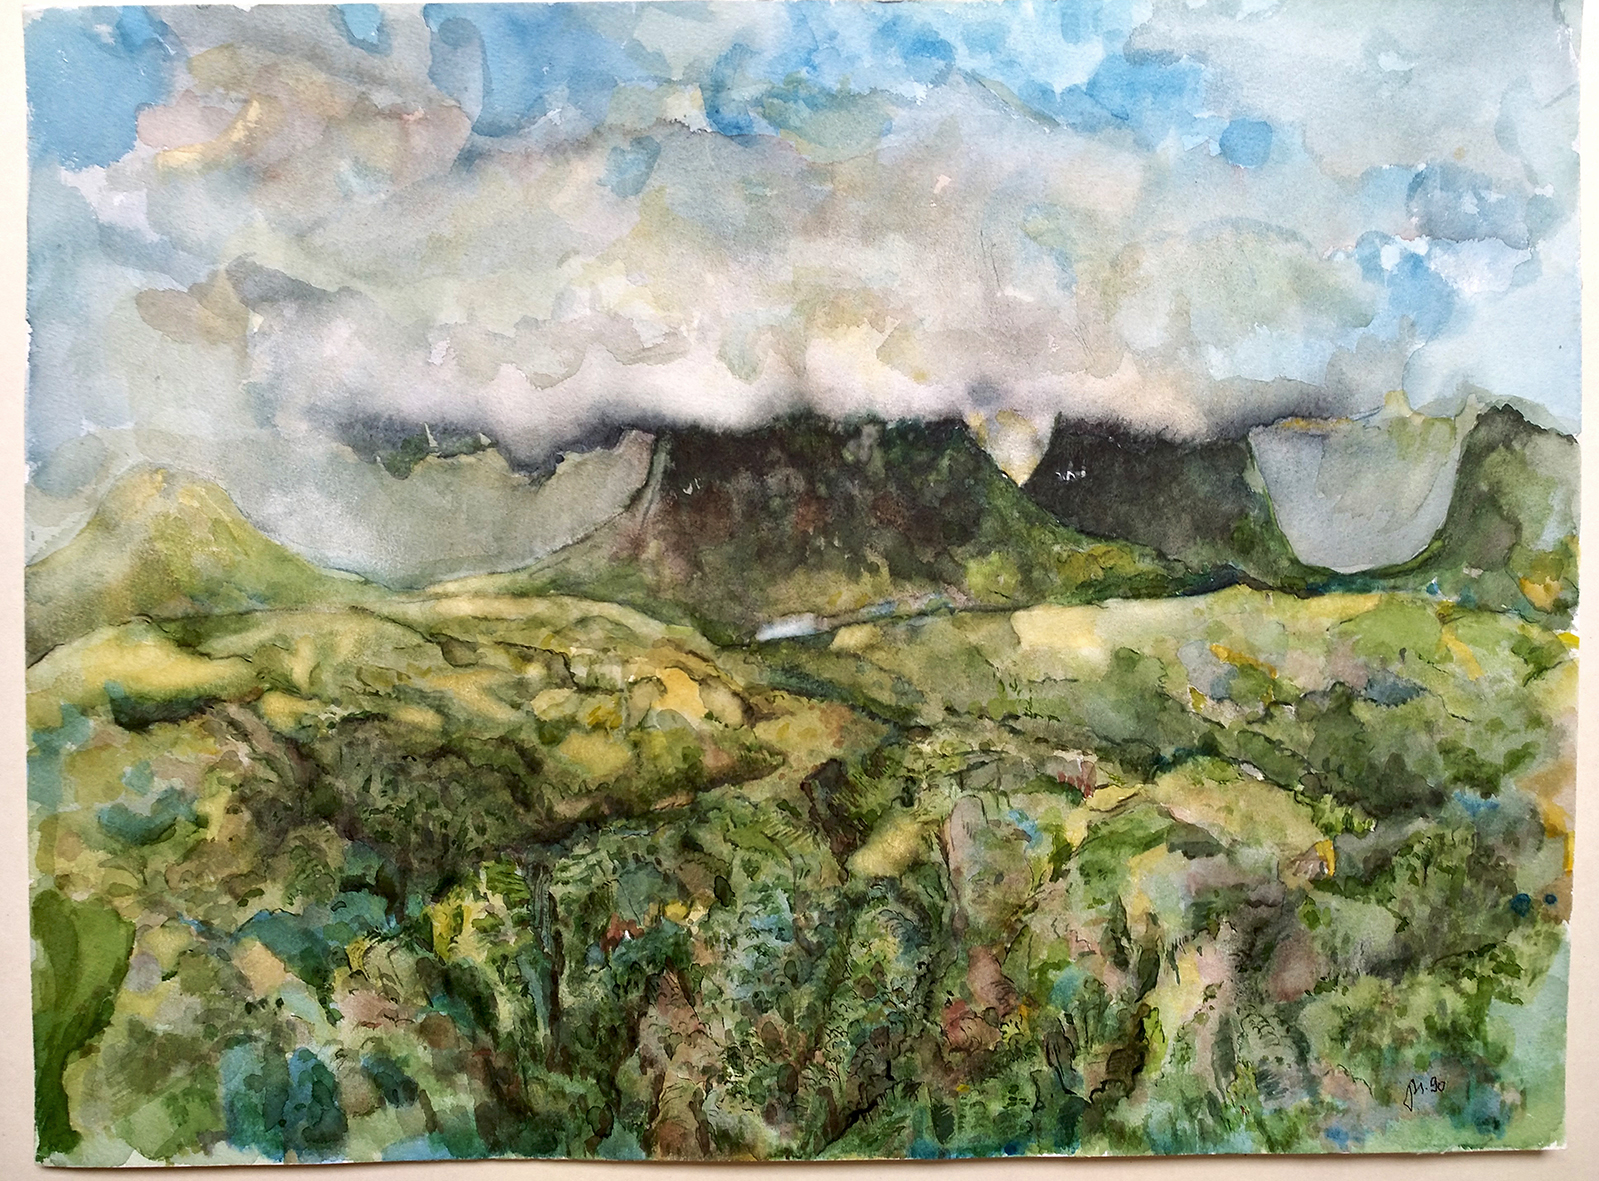 Die Wolke ‐ Lochinver, 1990. Watercolor on paper. 48 x 36 cm, framed.